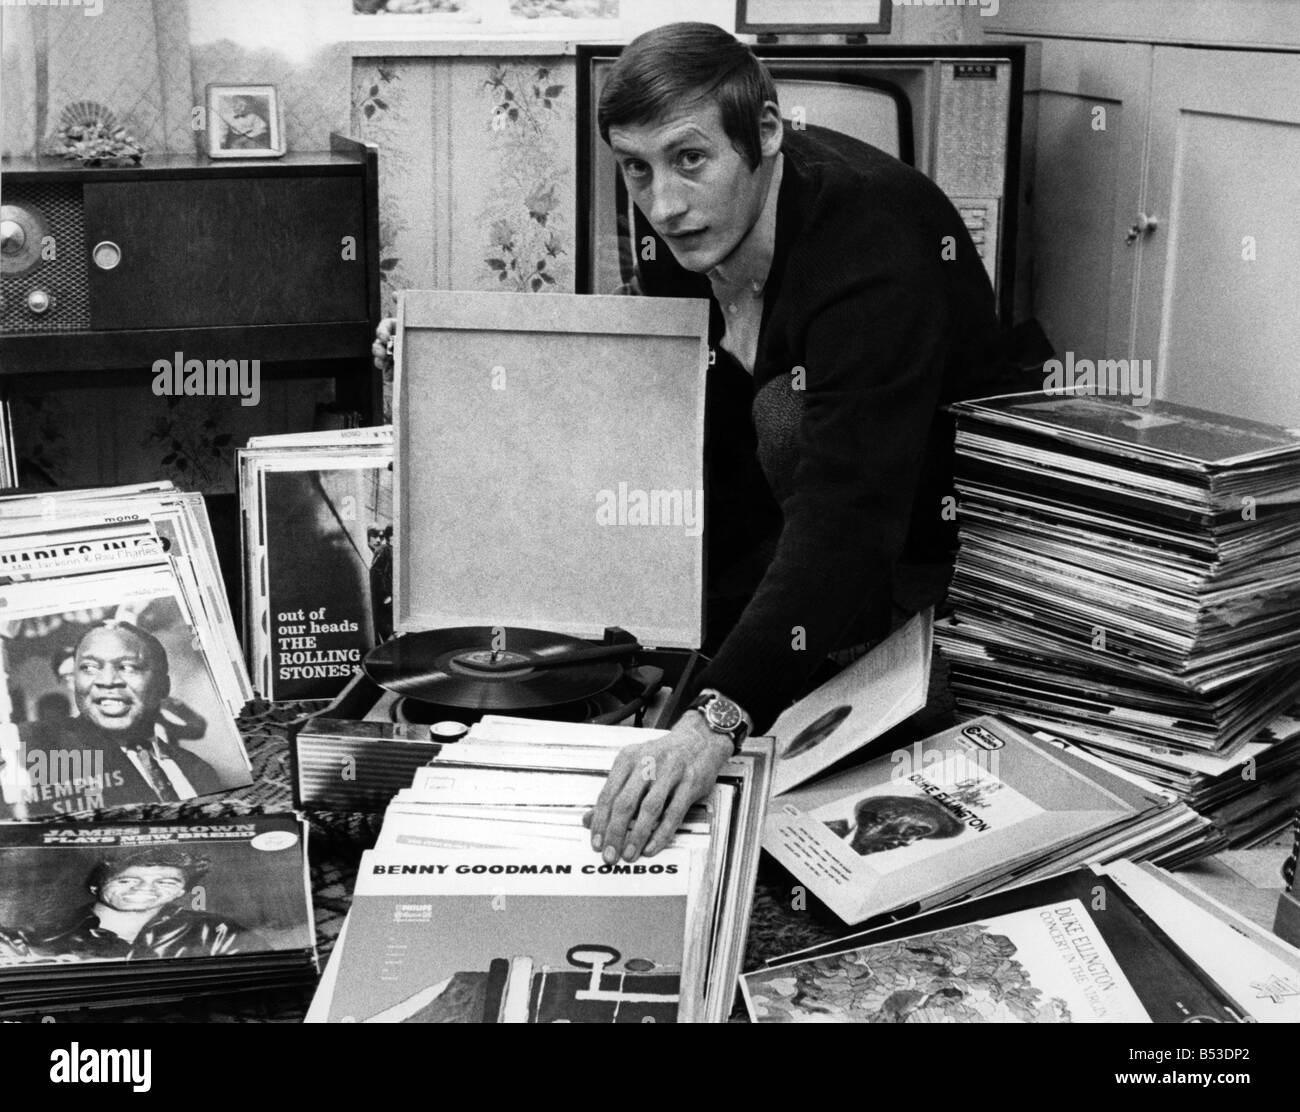 Mr. Colin Tustin at home in Hythe Bridge St. Oxford seen cleaning some of his 486 long playing jazz records. Vinyl. - Stock Image